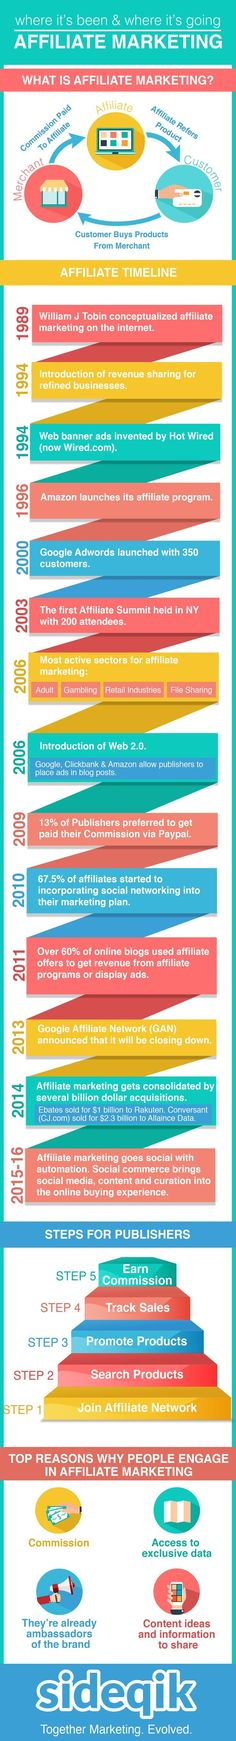 Affiliate #marketing where it's been and where it's going (Infographic)